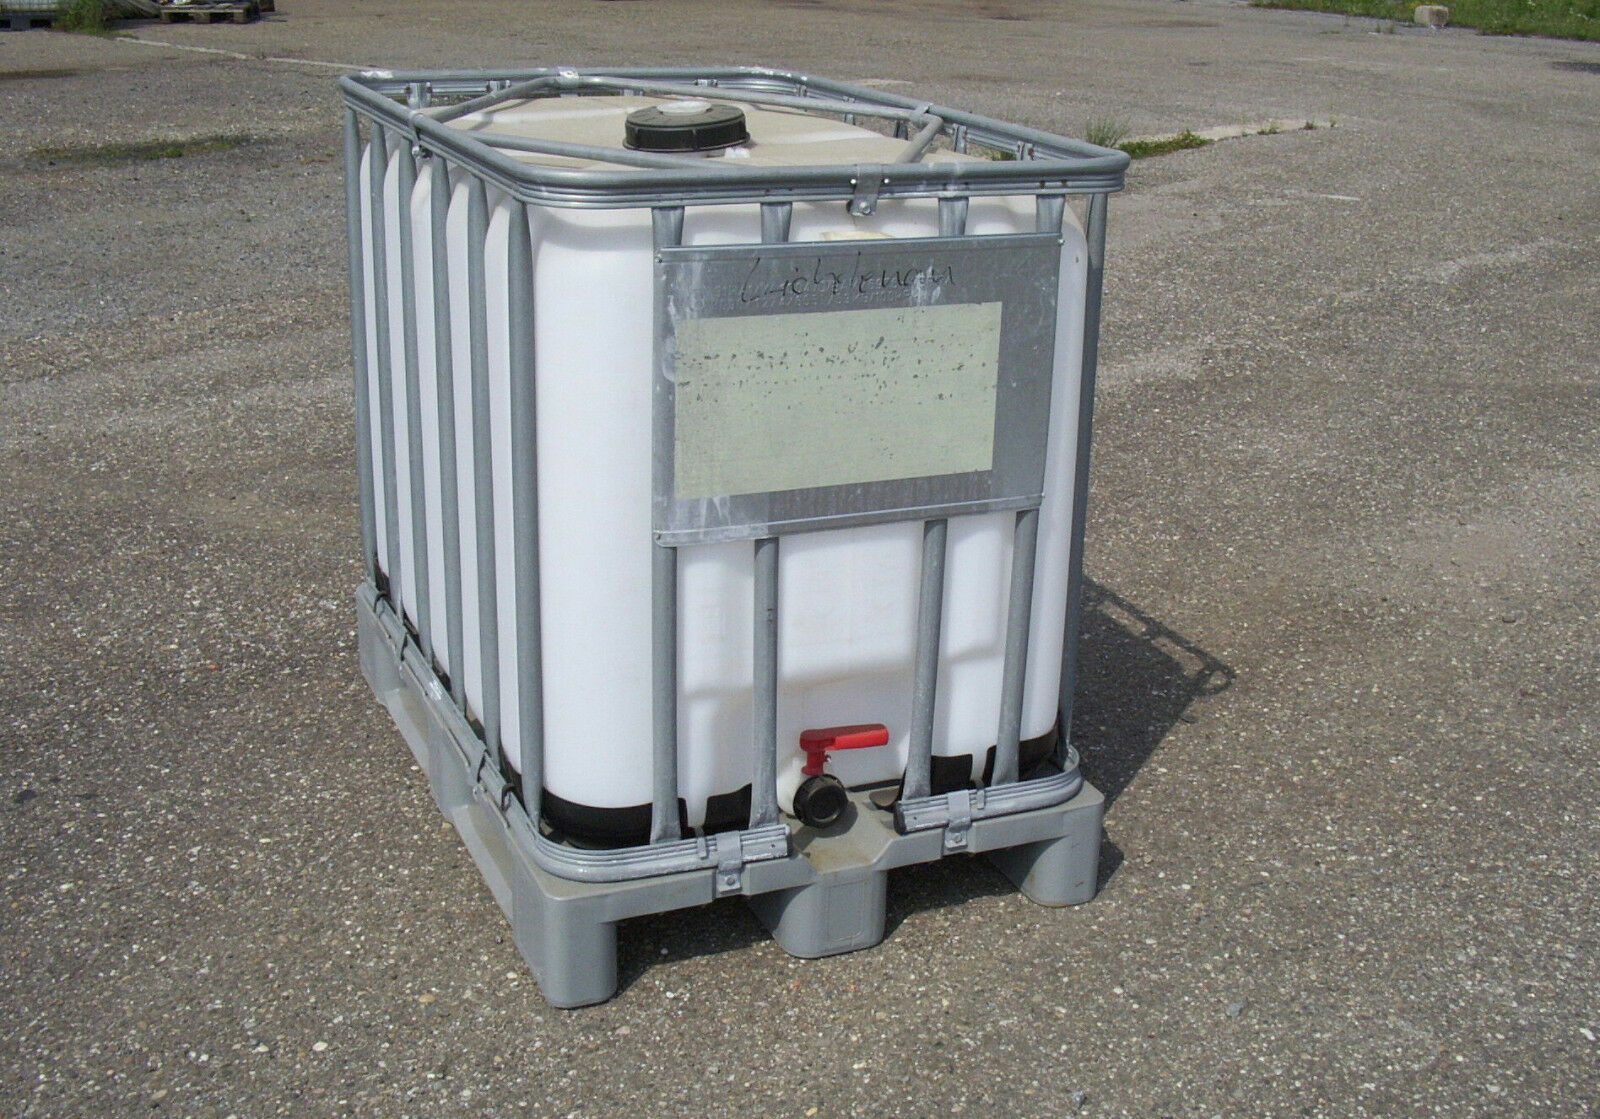 regenwasser wandtank 1000l. gallery of liter wassertank with